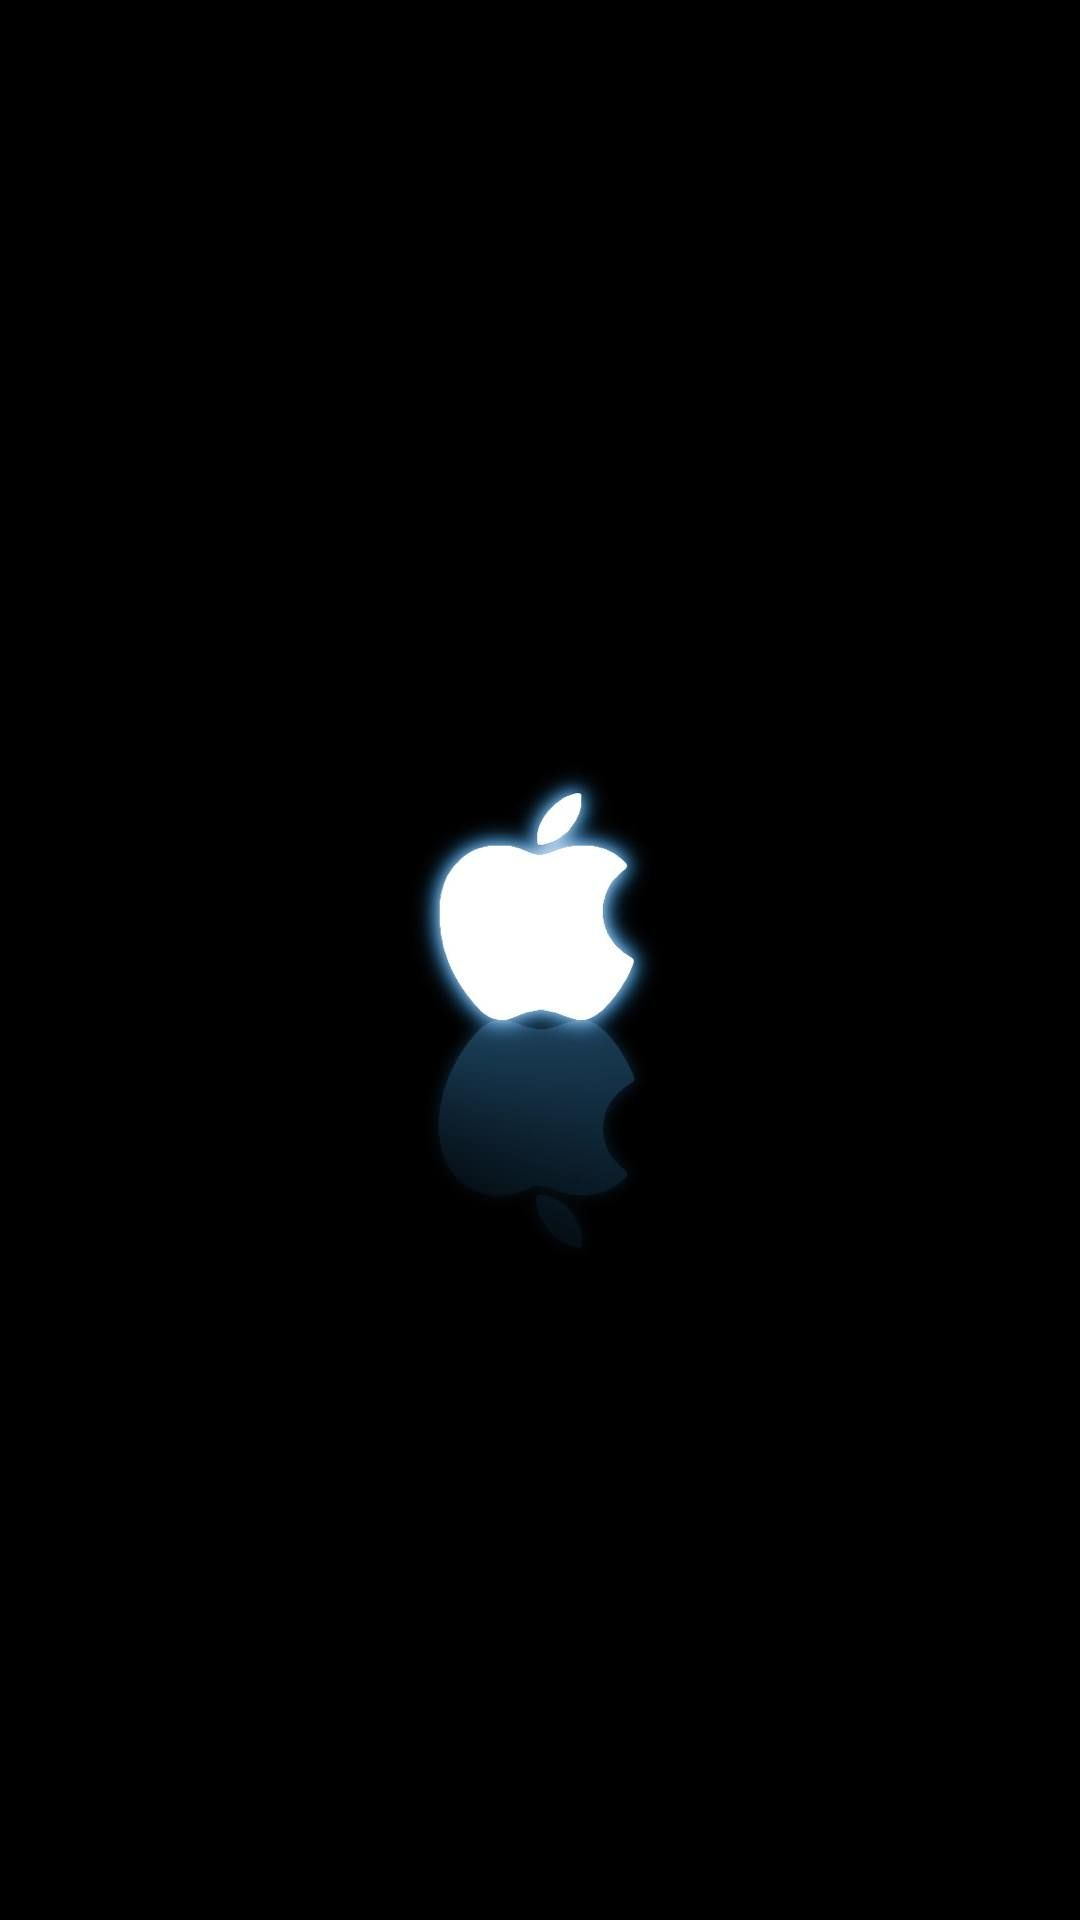 Black And White Apple Logo Iphone6 Wallpapers Iphone Wallpaper